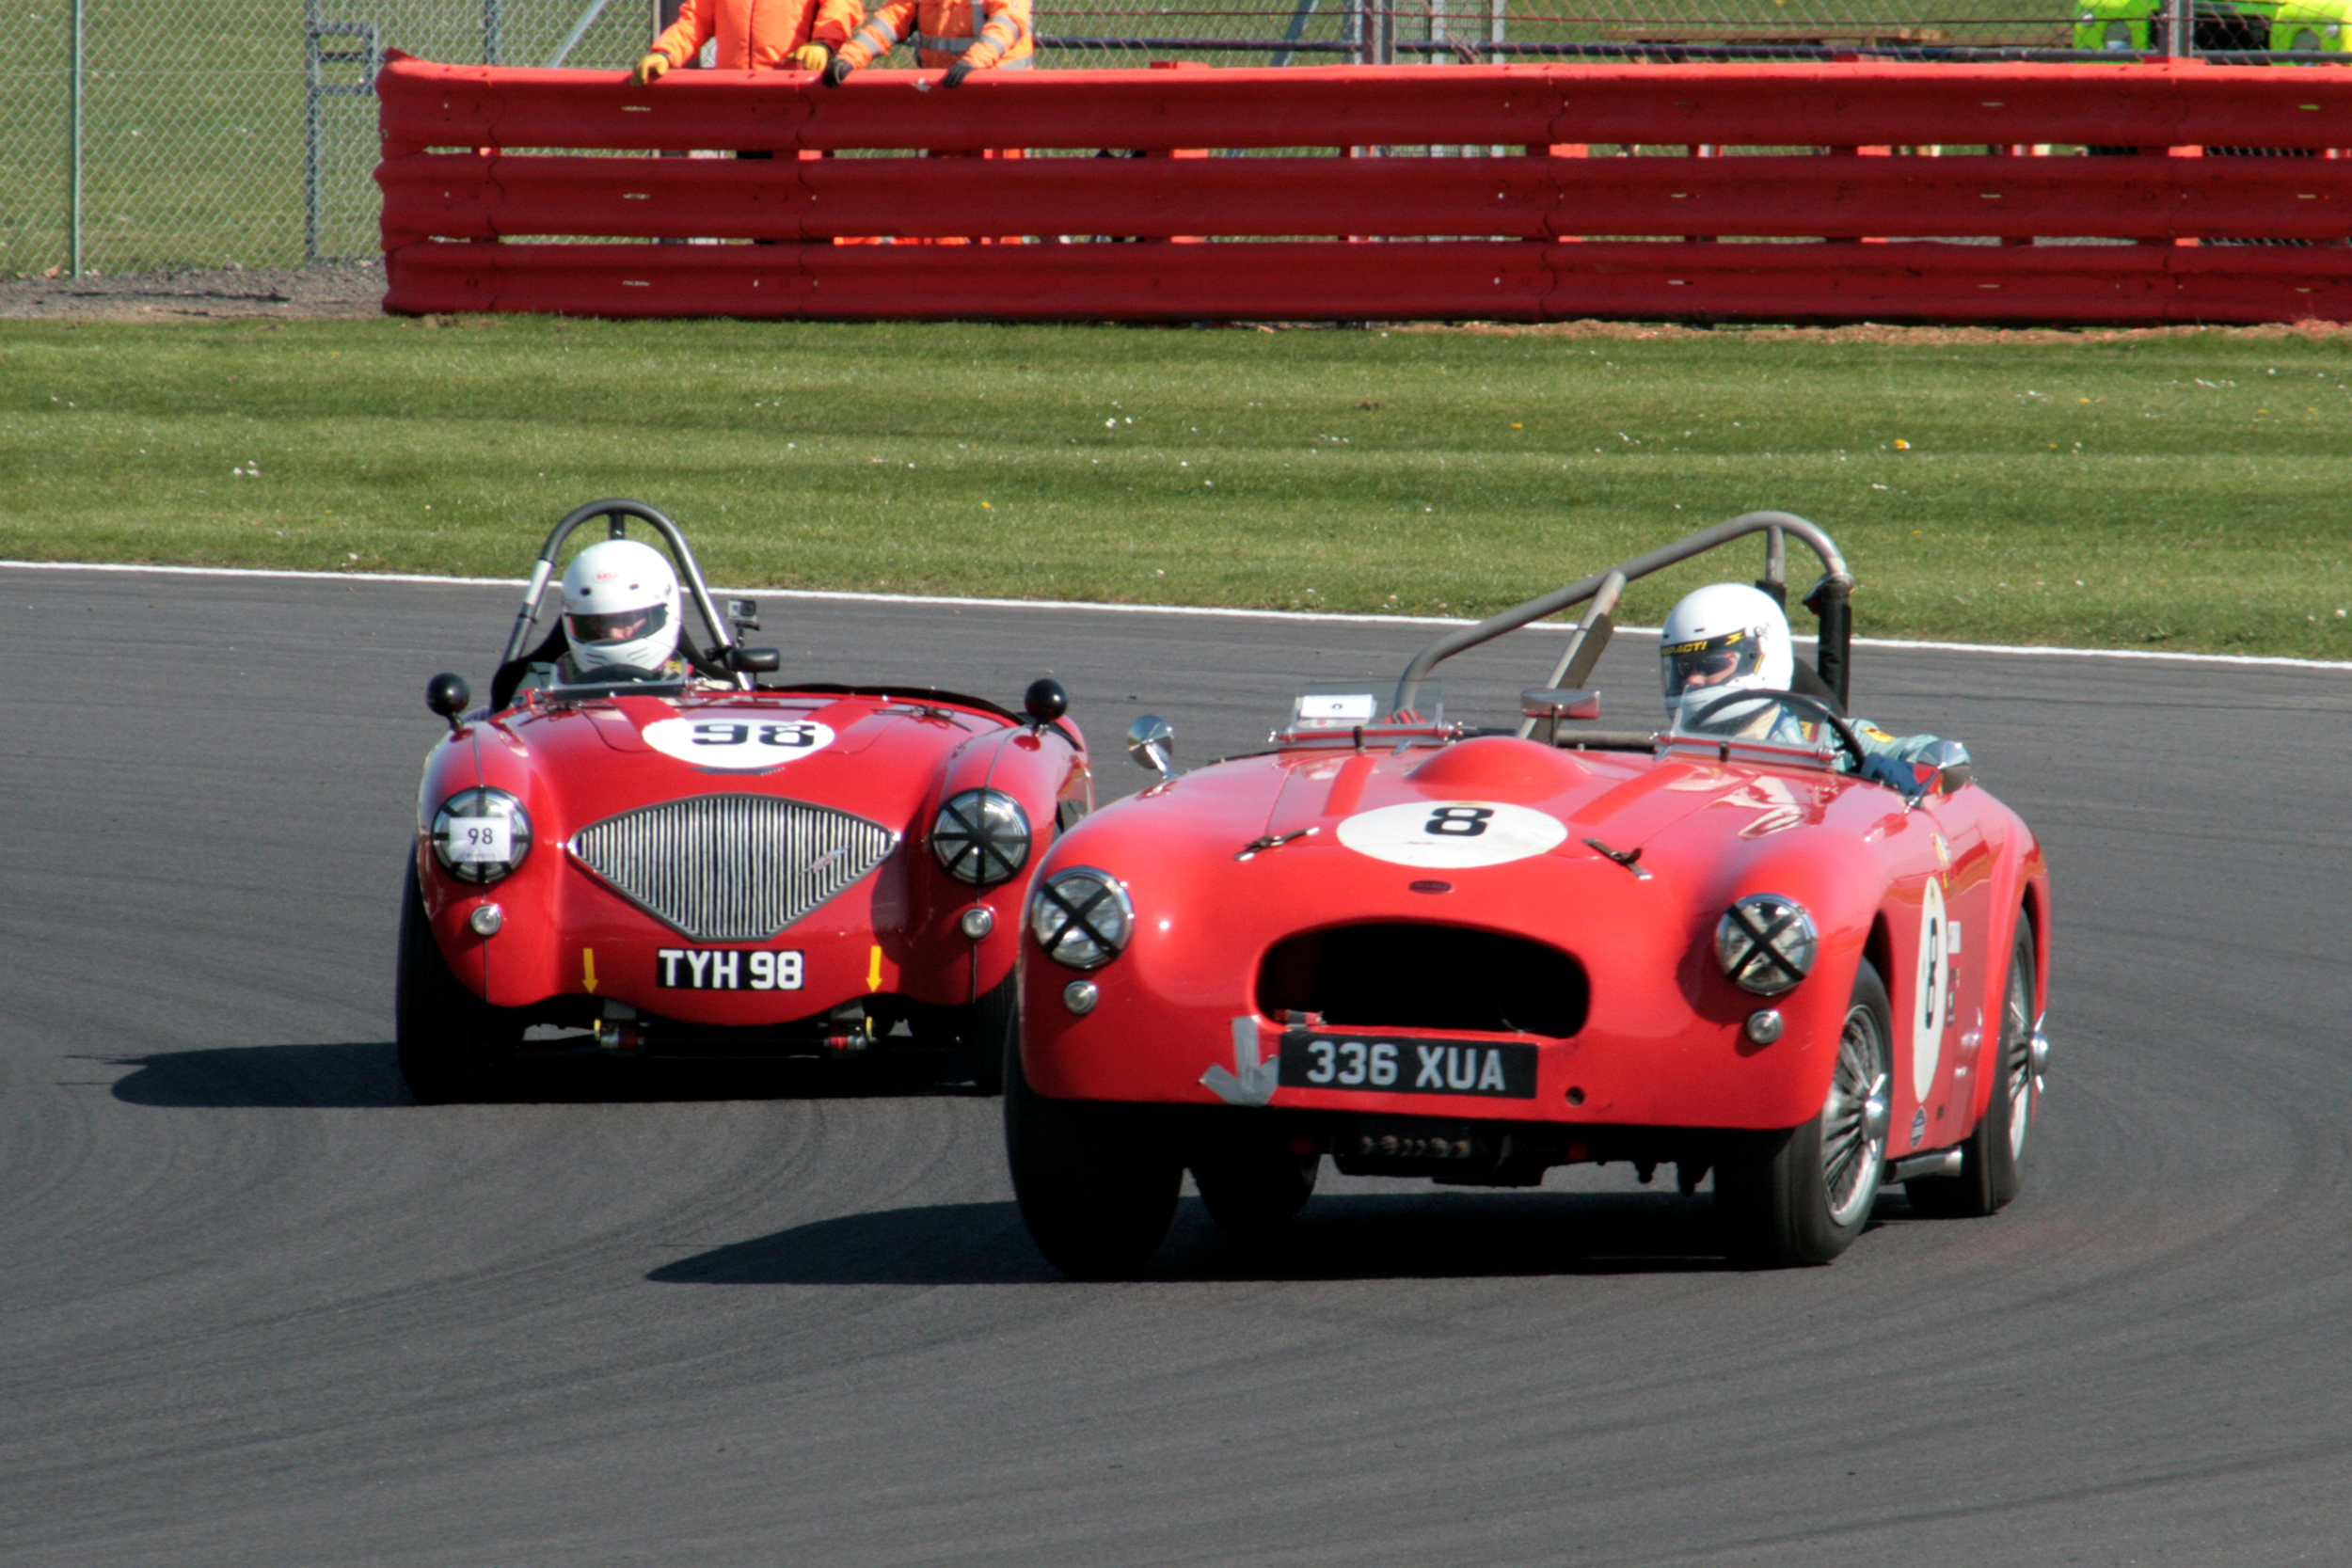 Superb battle during the first half of the race betweenMark Butterworth (Allard K3) and Nick Matthews Austin Healey 100/4) in which Nick got the upper hand and Mark was delayed by a long pit stop     Photo - John TuiRner